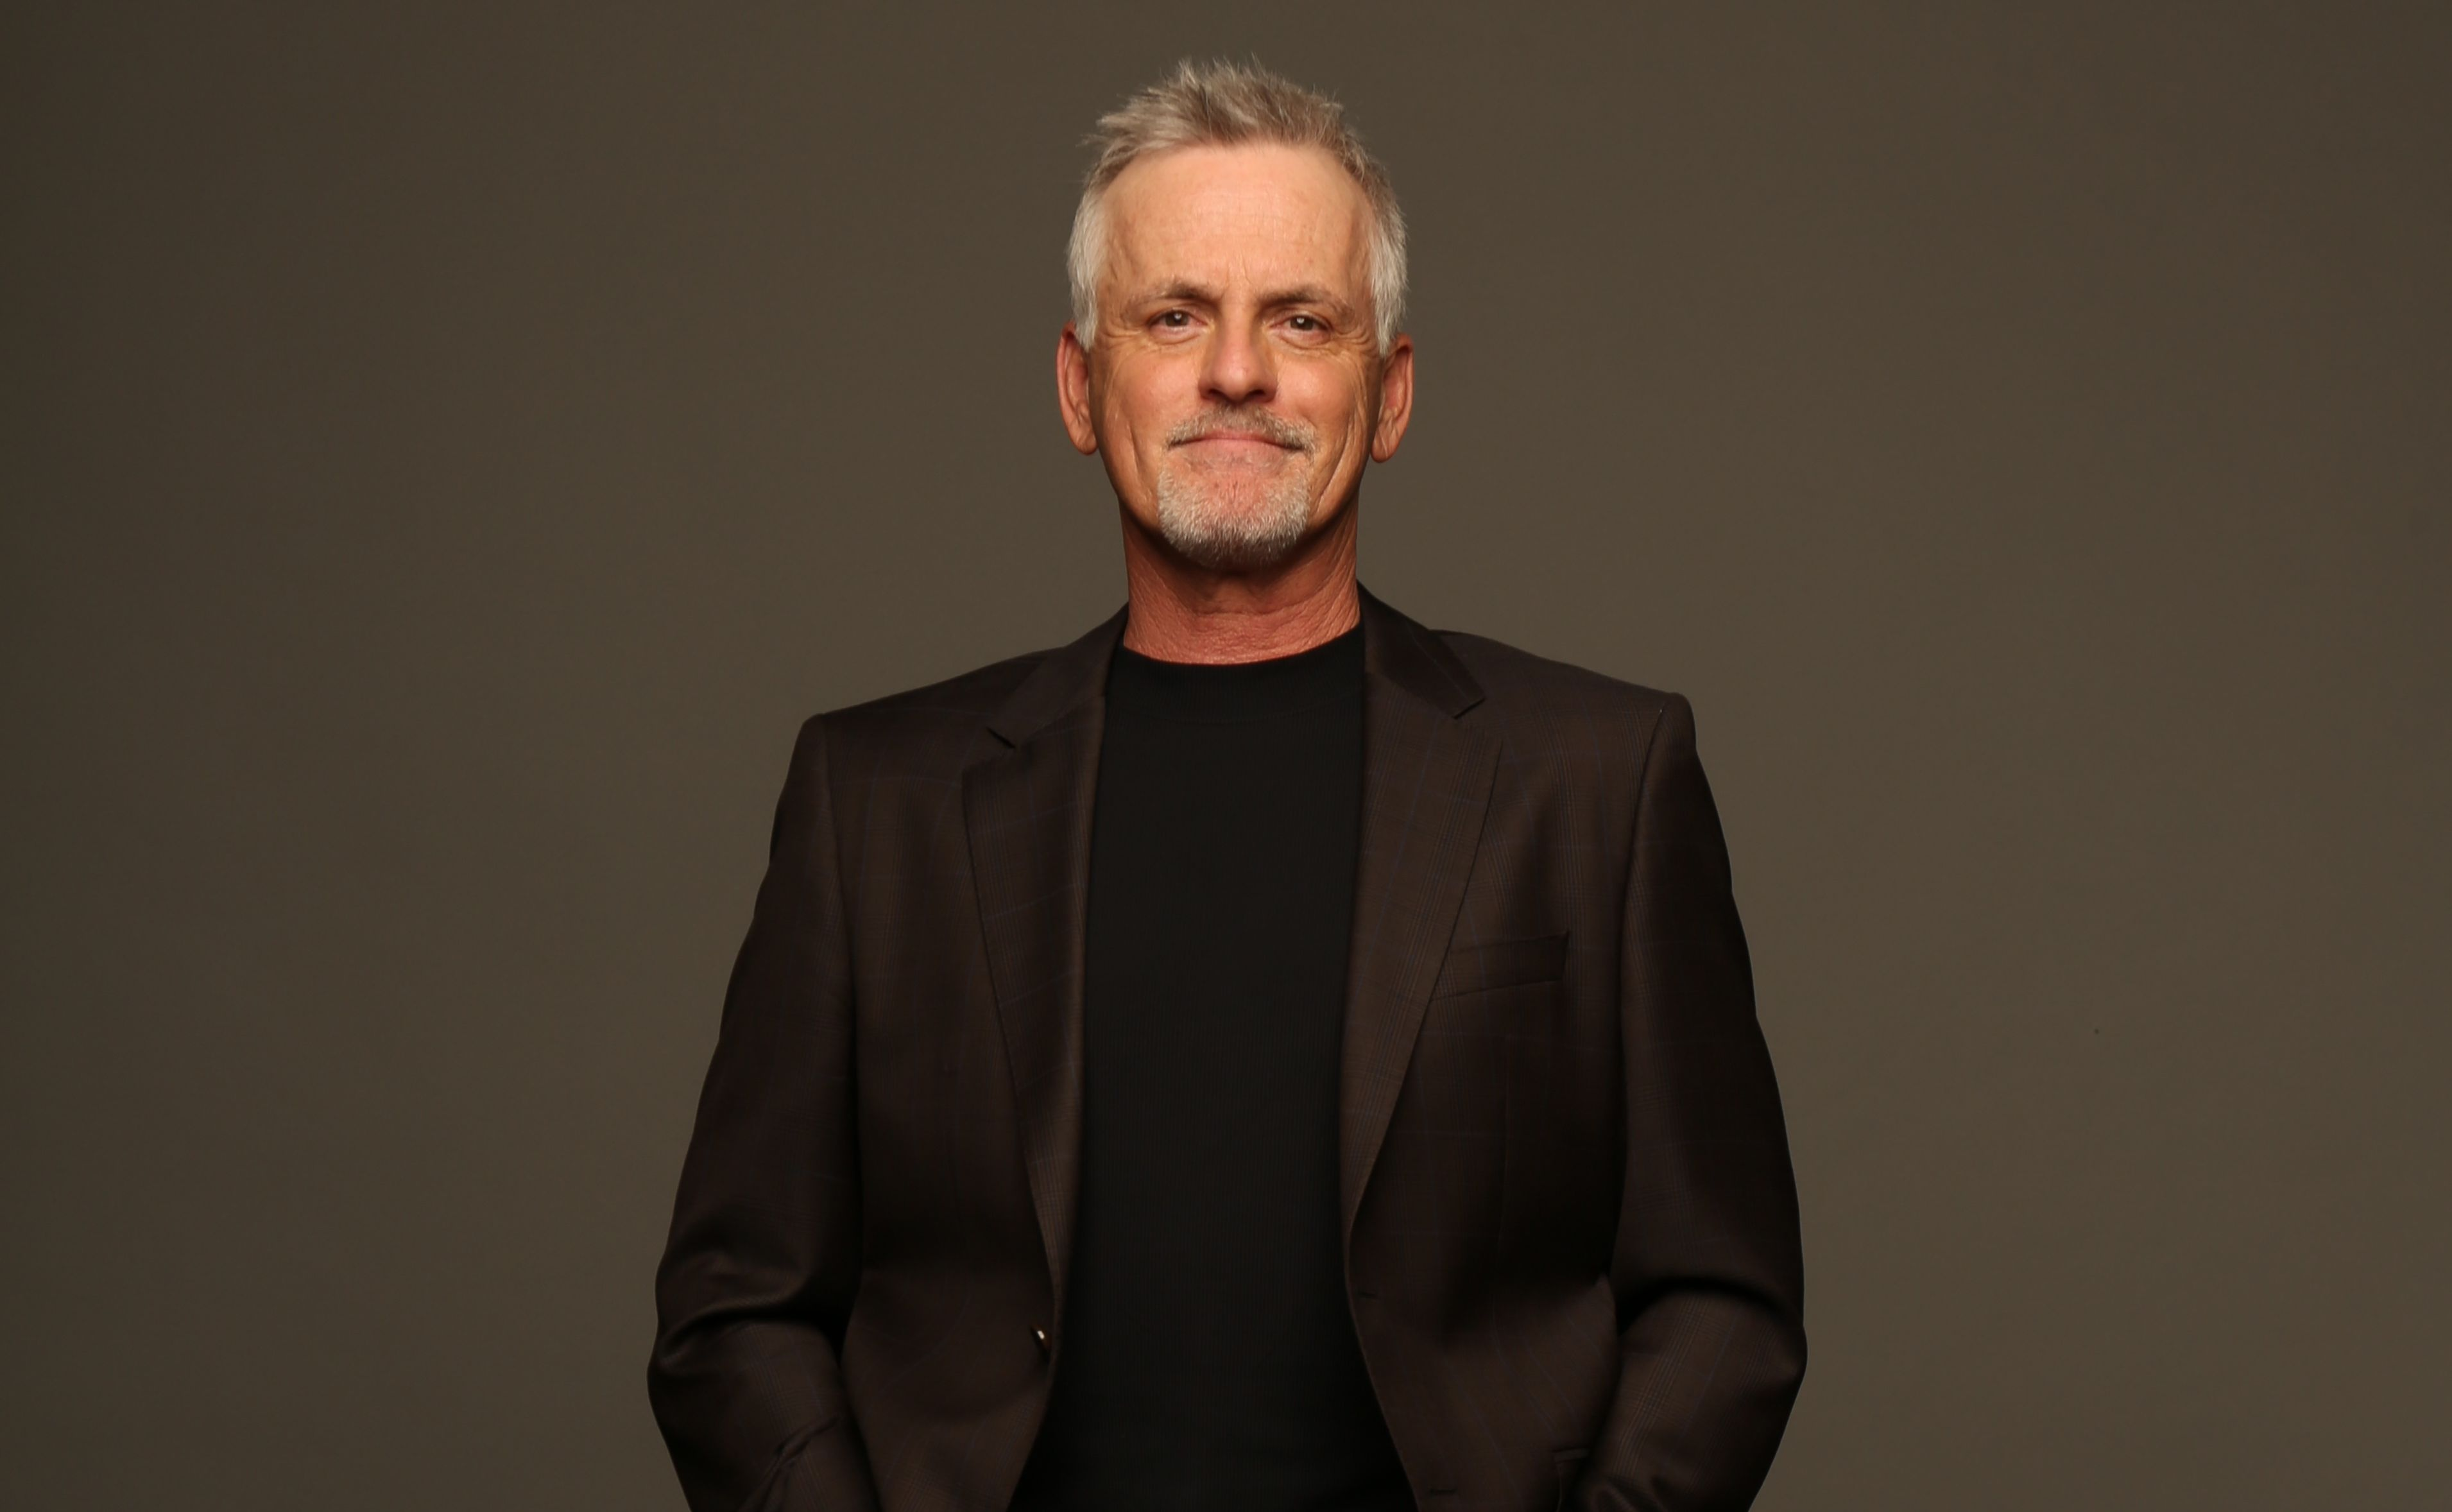 rob paulsen nations of the world